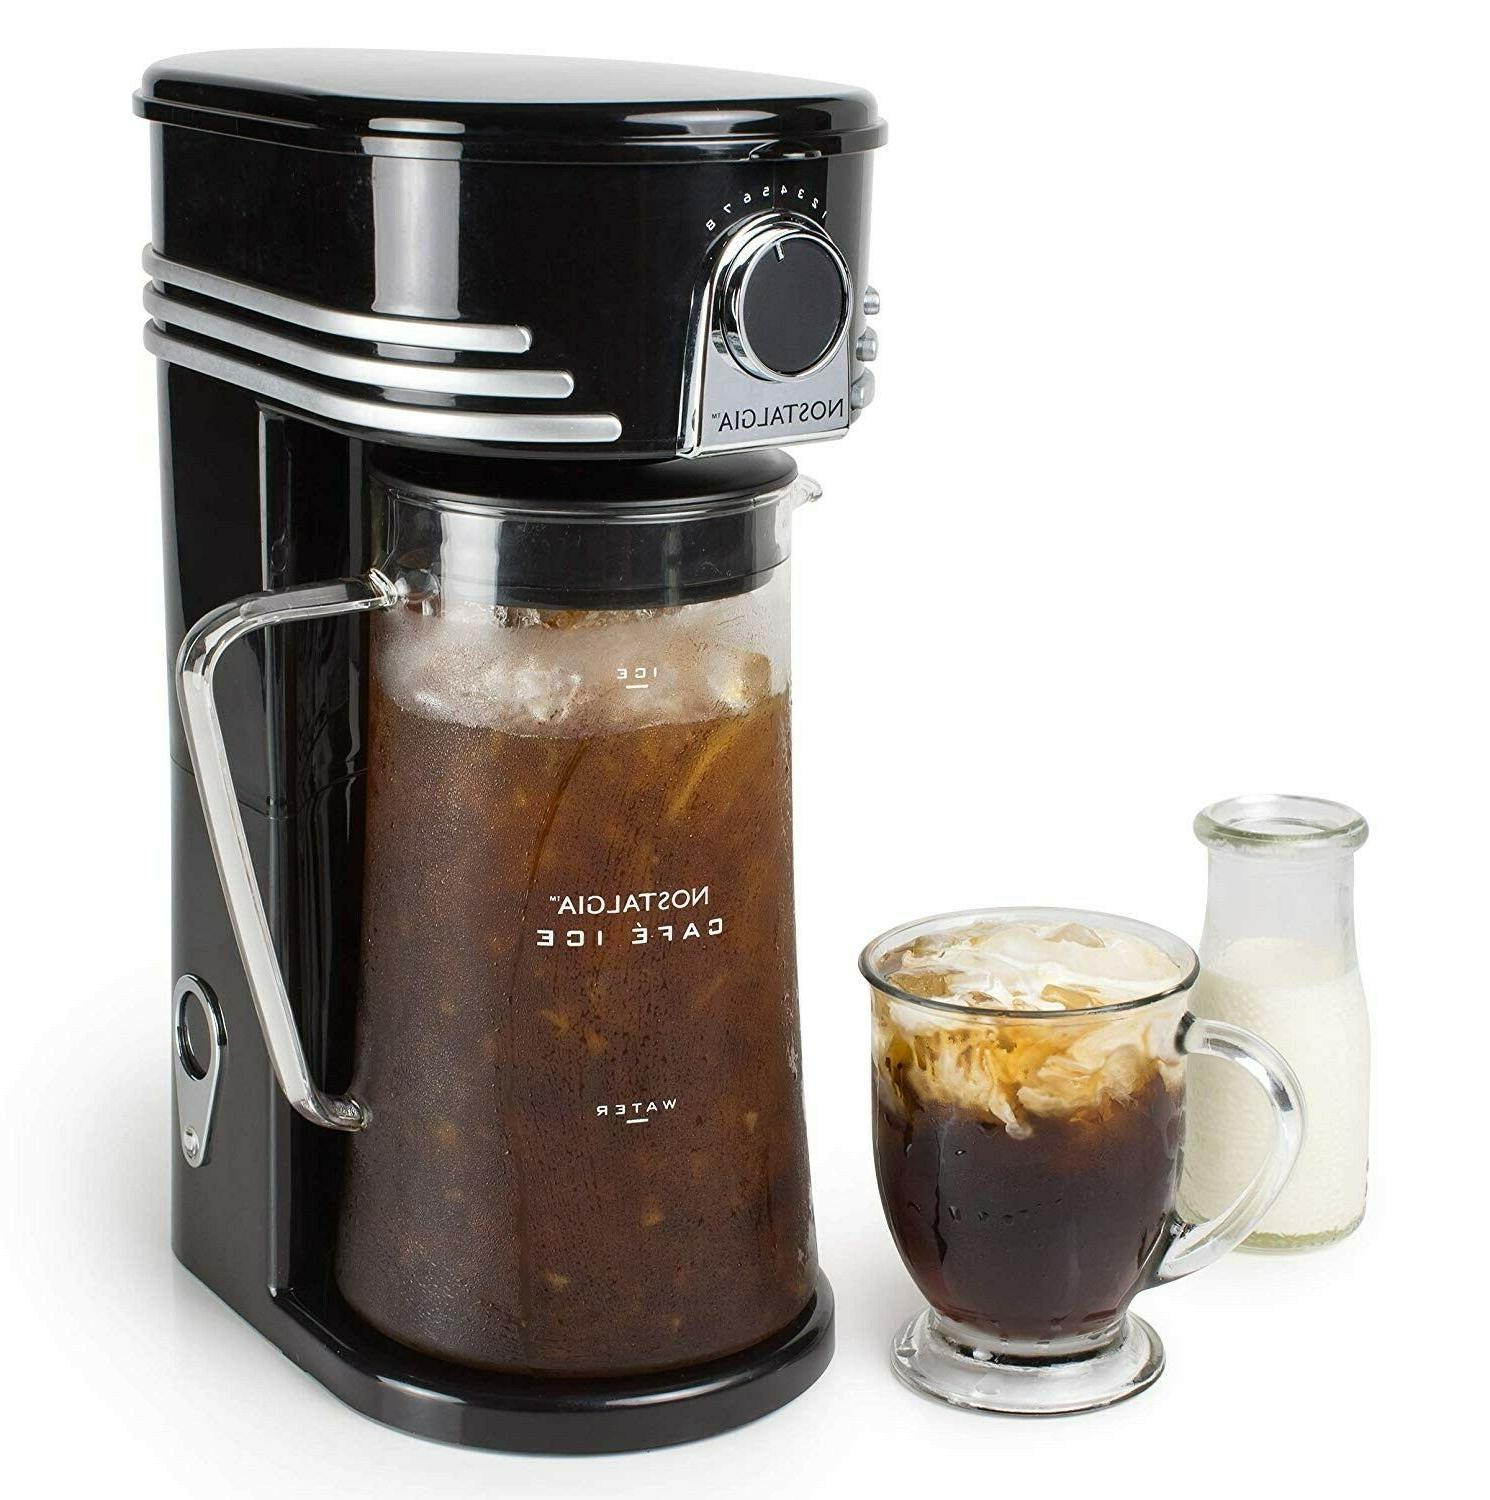 iced coffee maker and tea brewing system